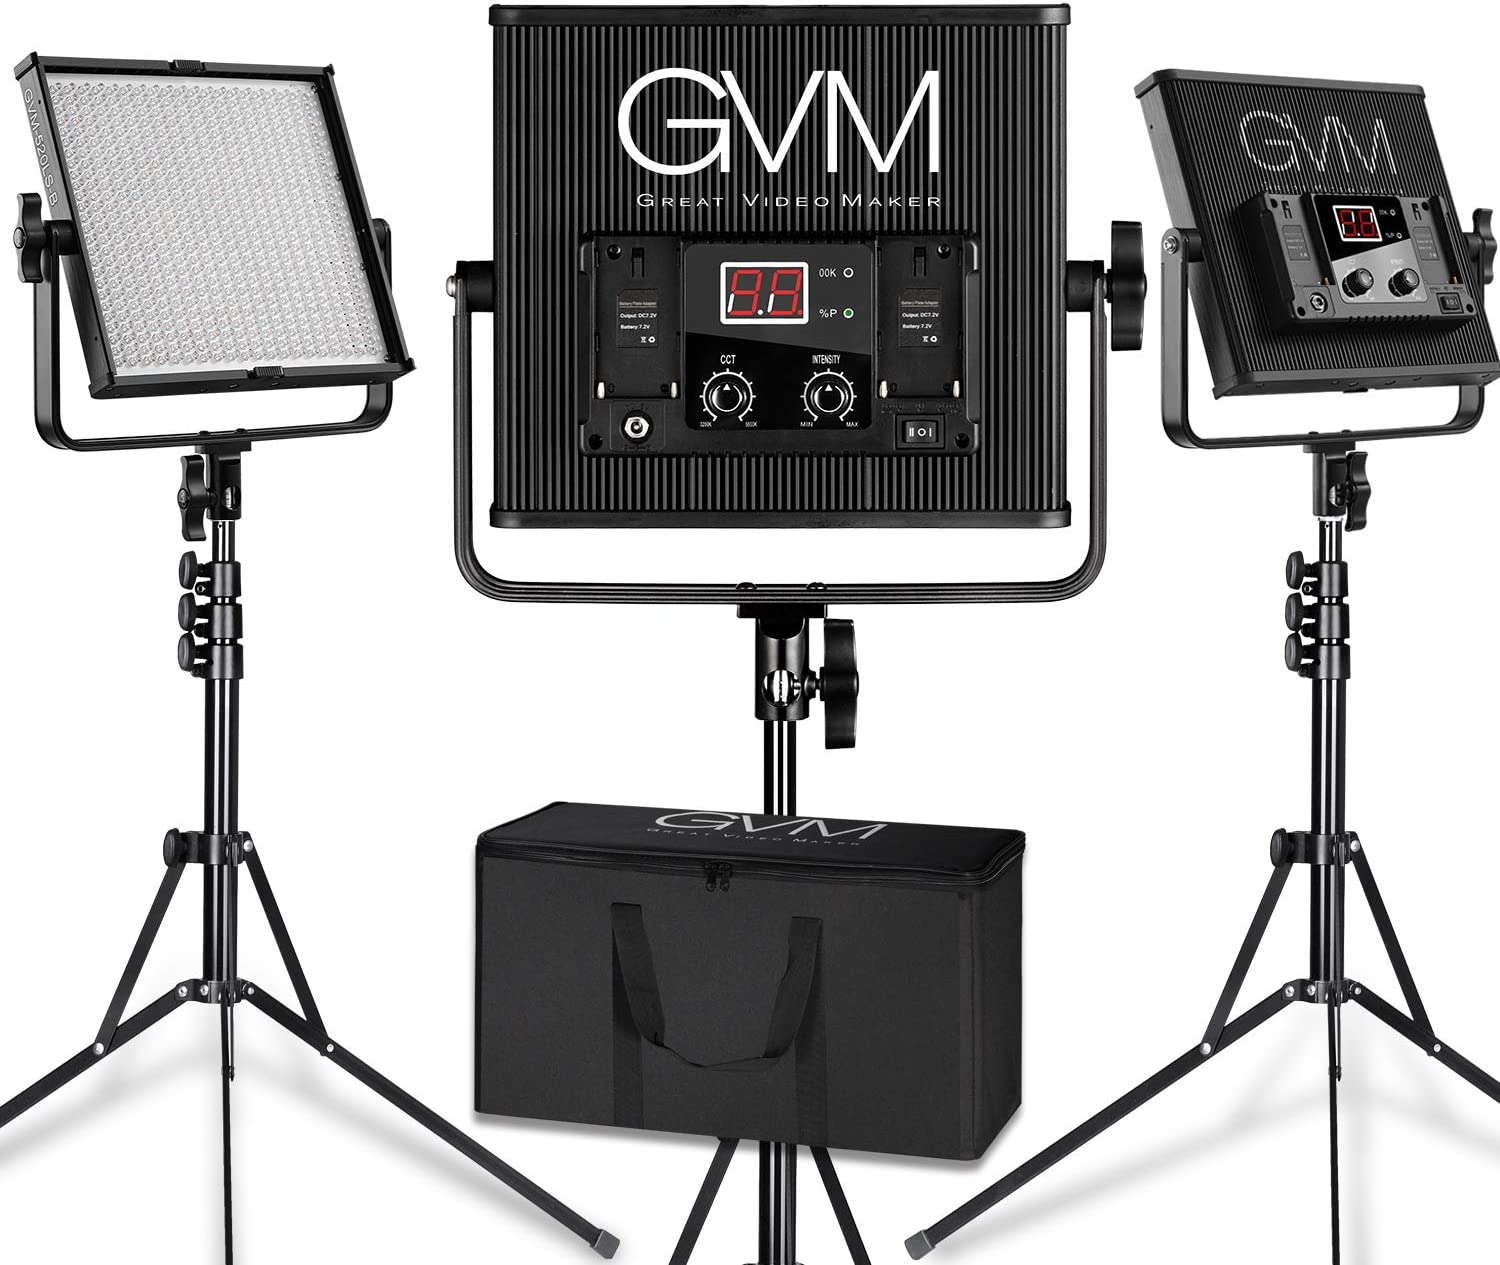 GVM 520S LED Video Panel 40% OFF Cheap Sale Light Variable 3200-5600 with Max 66% OFF Bi-Color